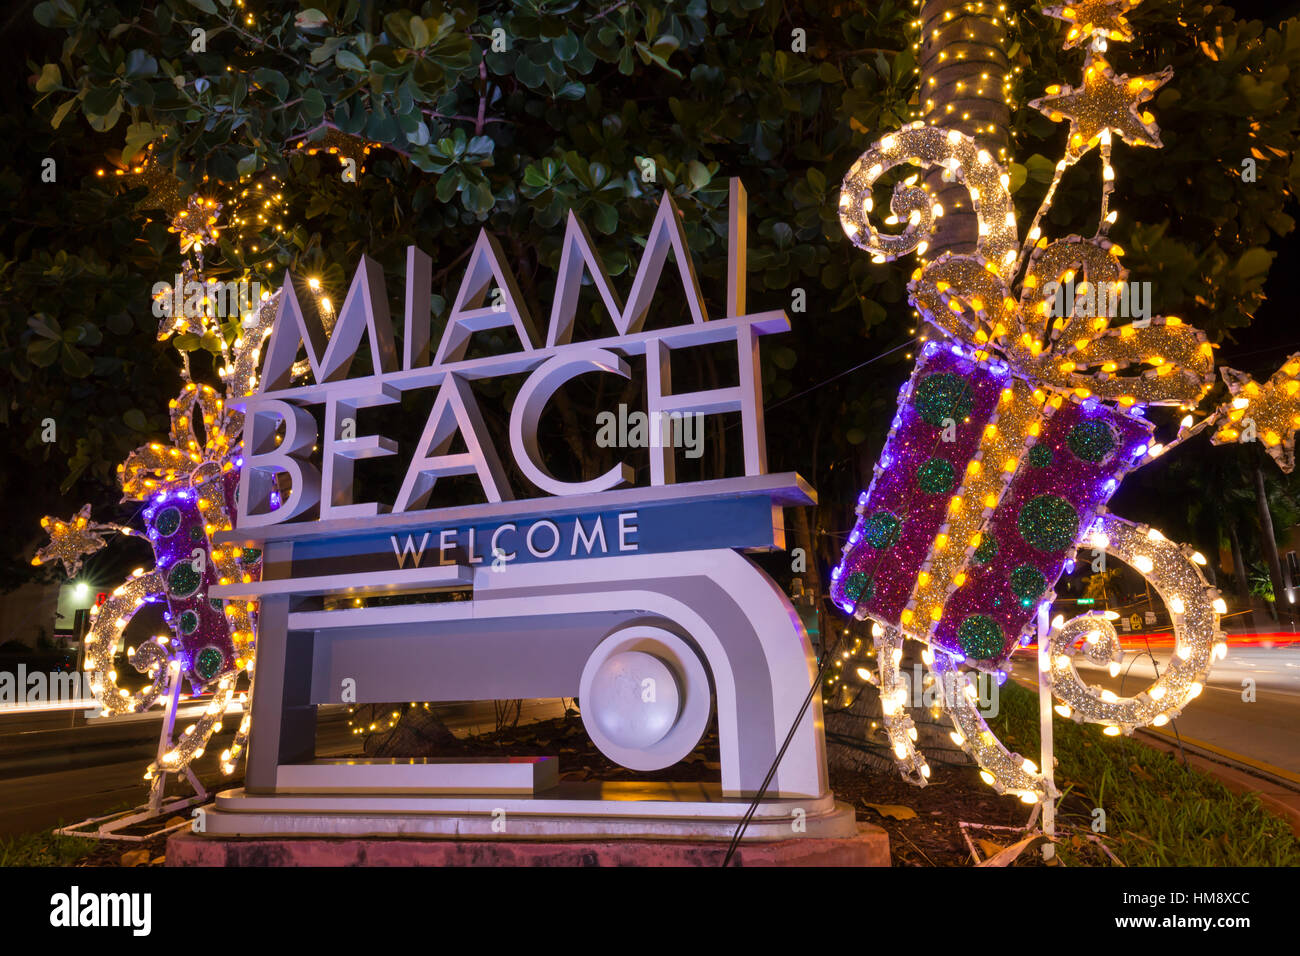 christmas decorations on welcome sign miami beach florida usa stock image - Florida Christmas Decorations